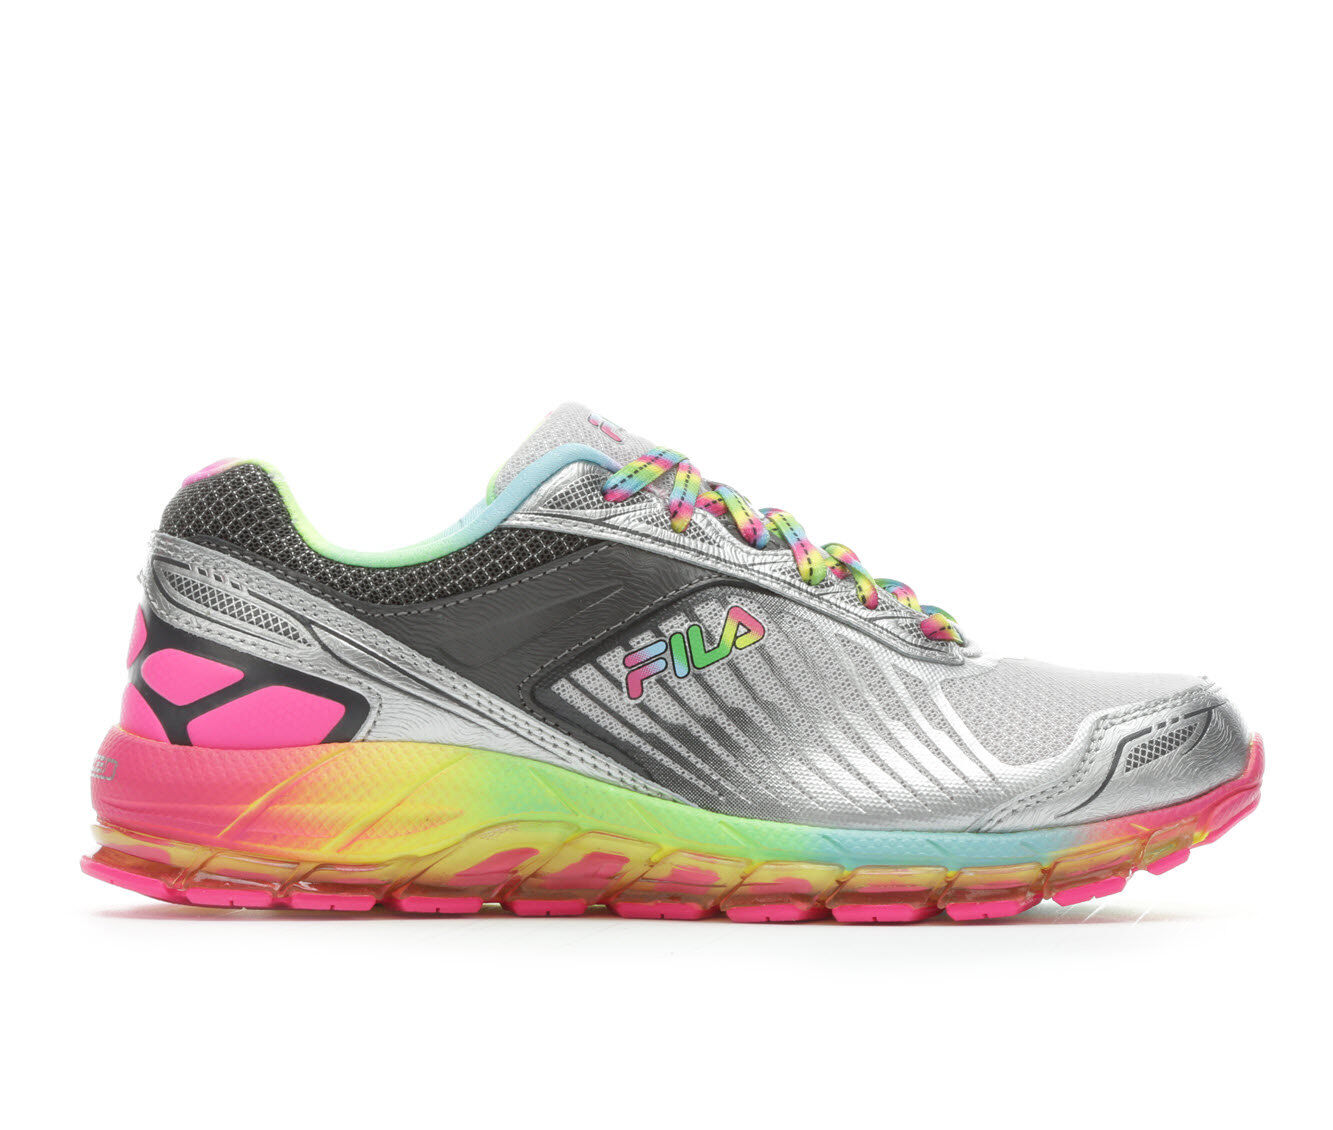 clearance footlocker finishline free shipping discounts Women's Fila Deliver 2 360 Energized Running Shoes PPi4n3